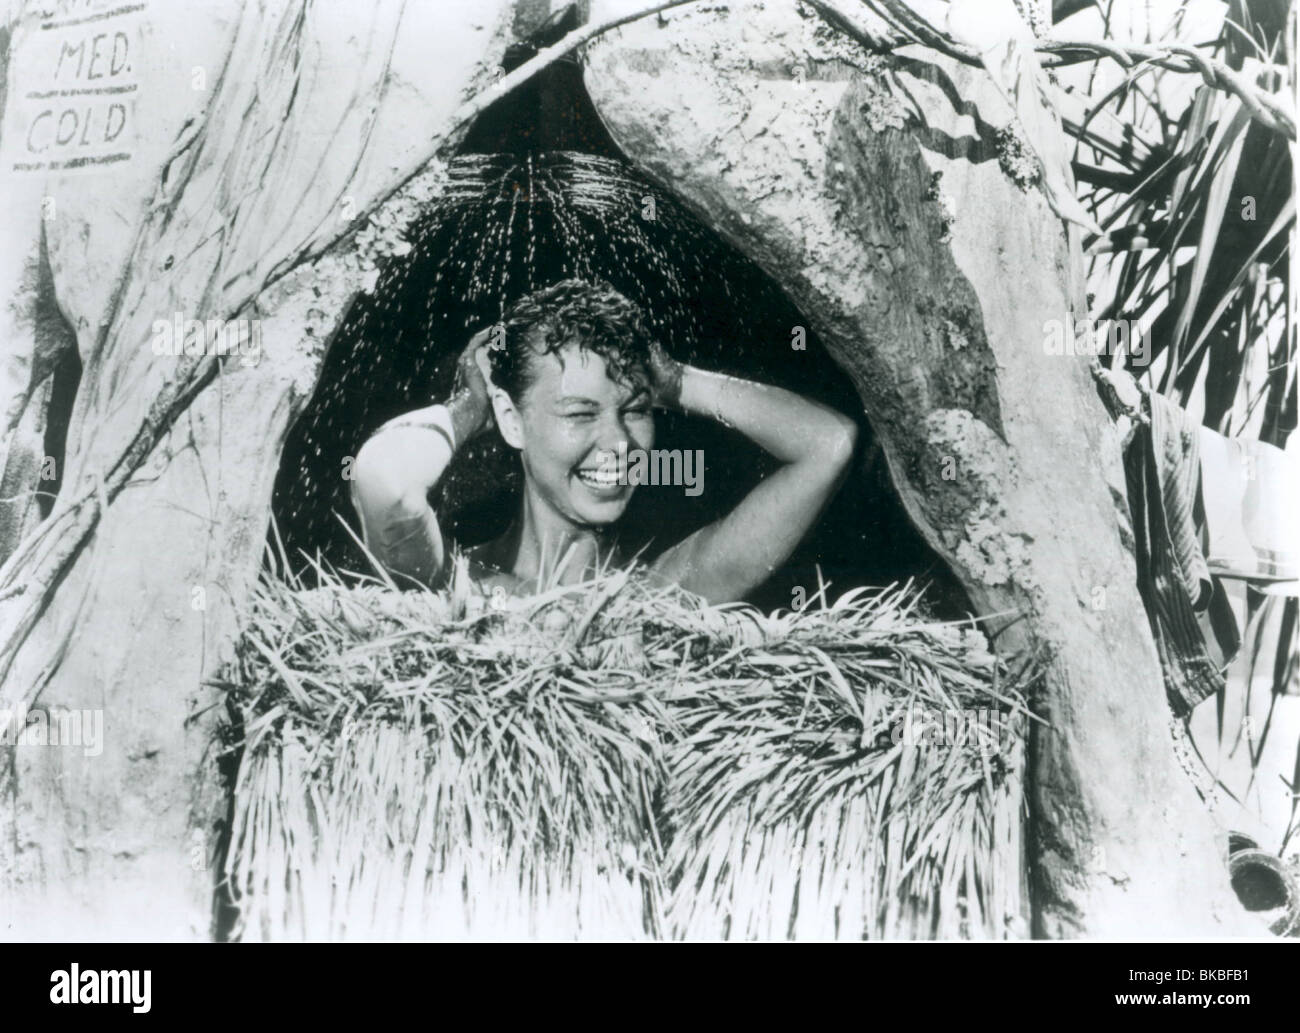 SOUTH PACIFIC (1958) MITZI GAYNOR SOP 002P - Stock Image